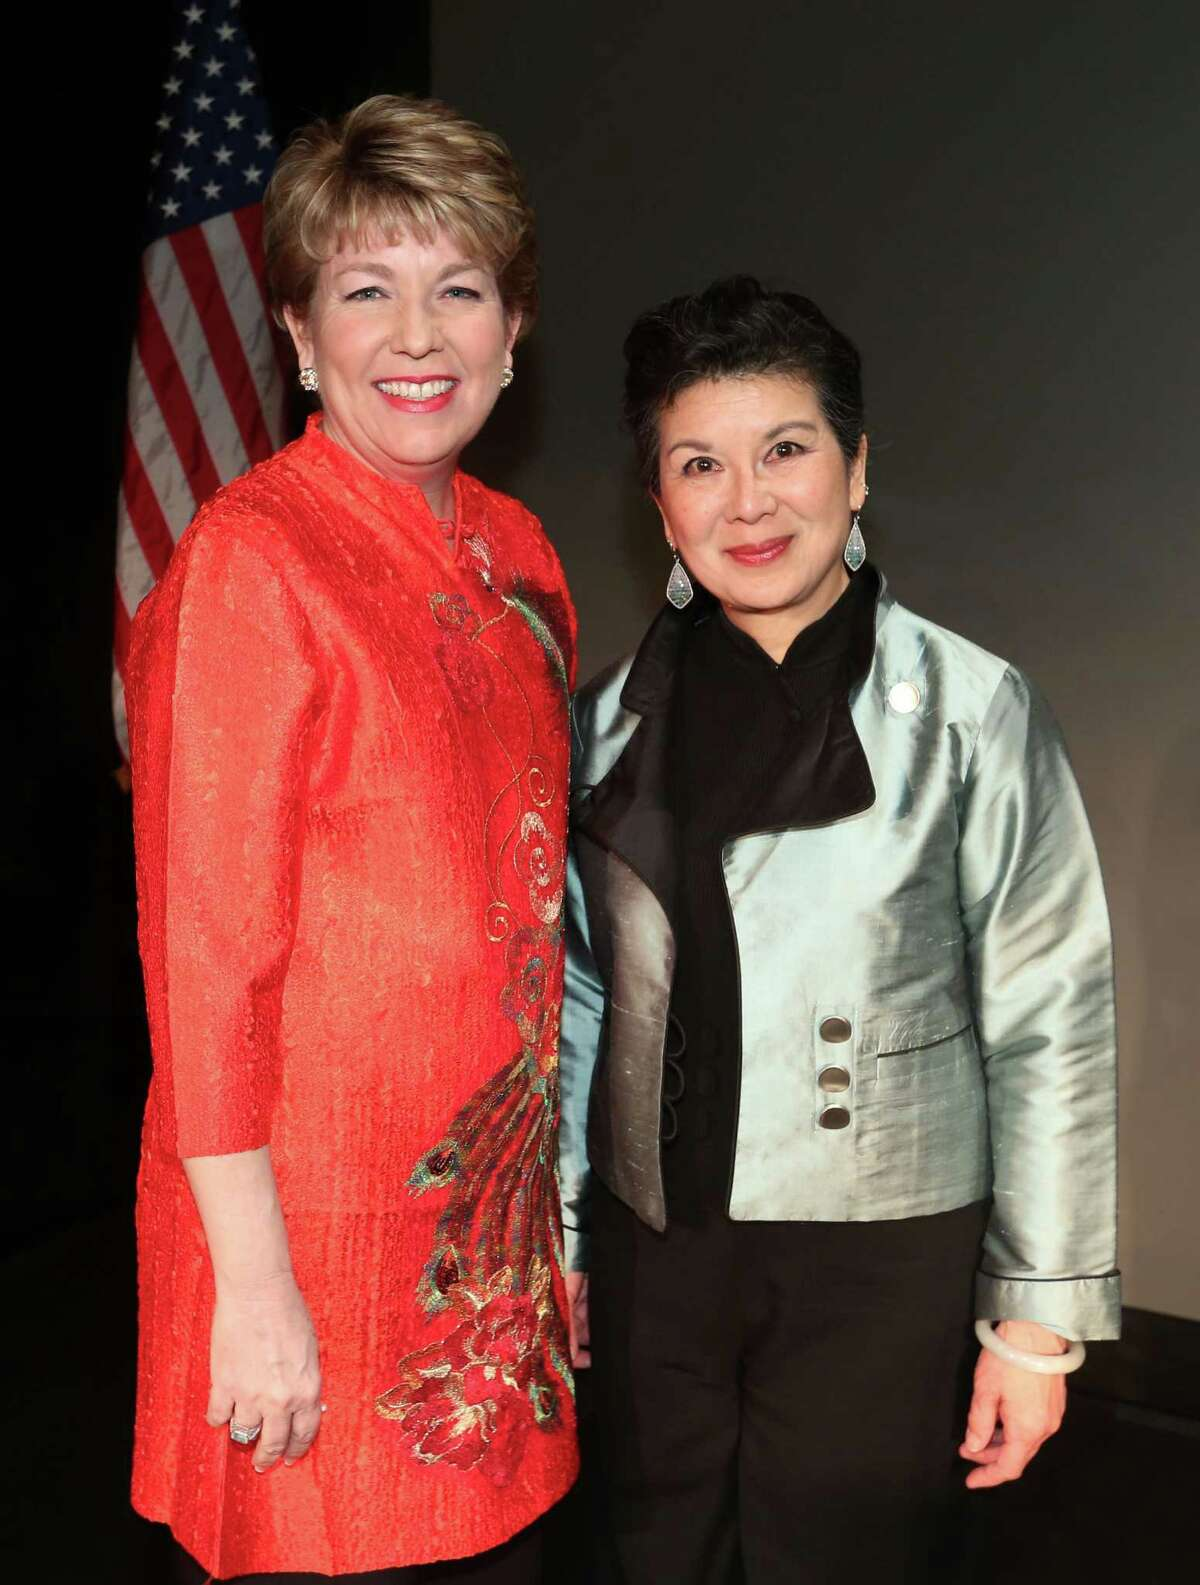 Executive Director Kelly Zuniga and Manli Ho, daughter of one of the honorees, at the Holocaust Museum LBJ Moral Courage Award Dinner at the Hilton Americas Hotel.